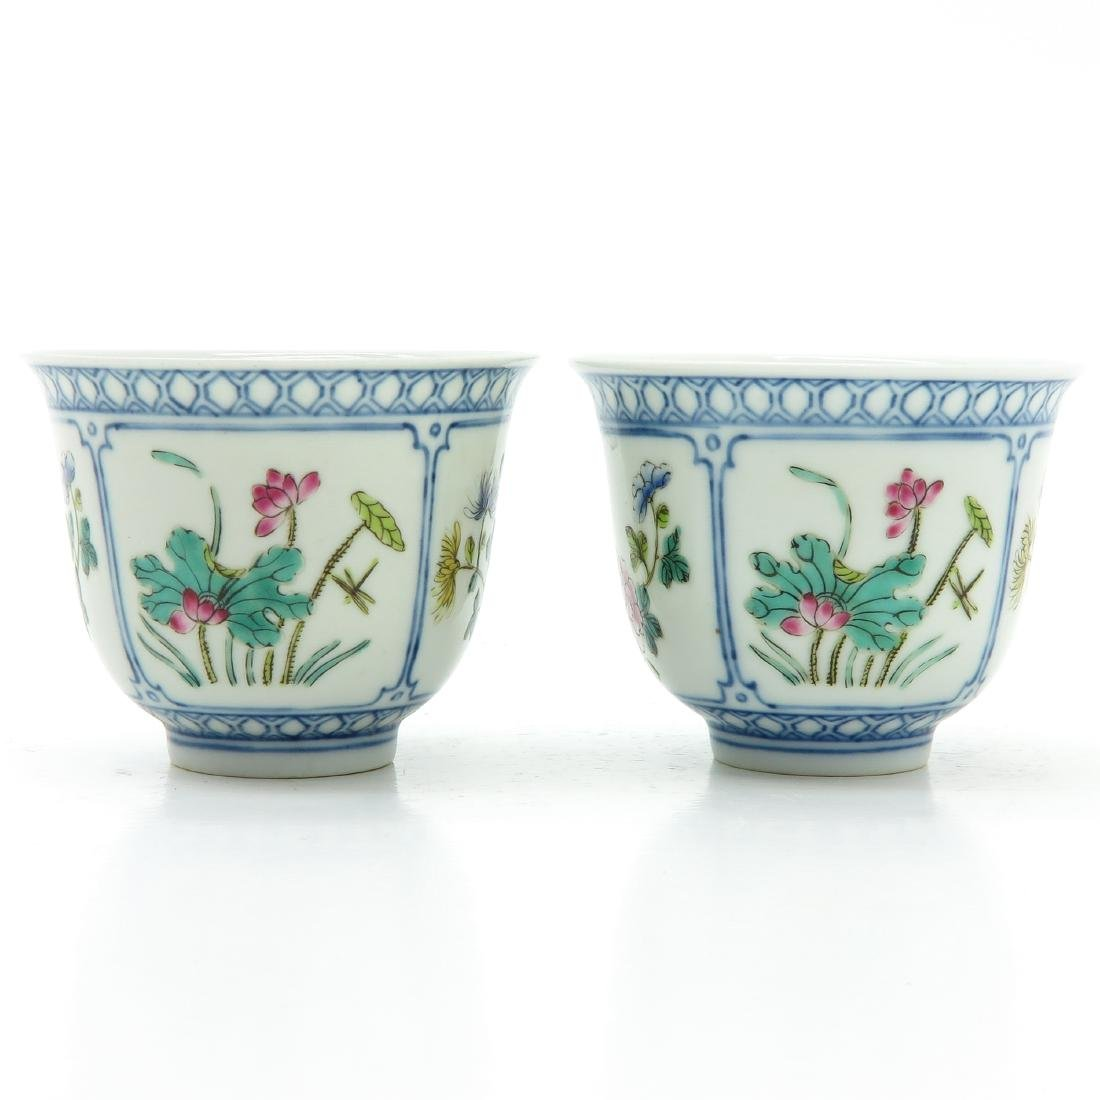 Lot of 2 Cups